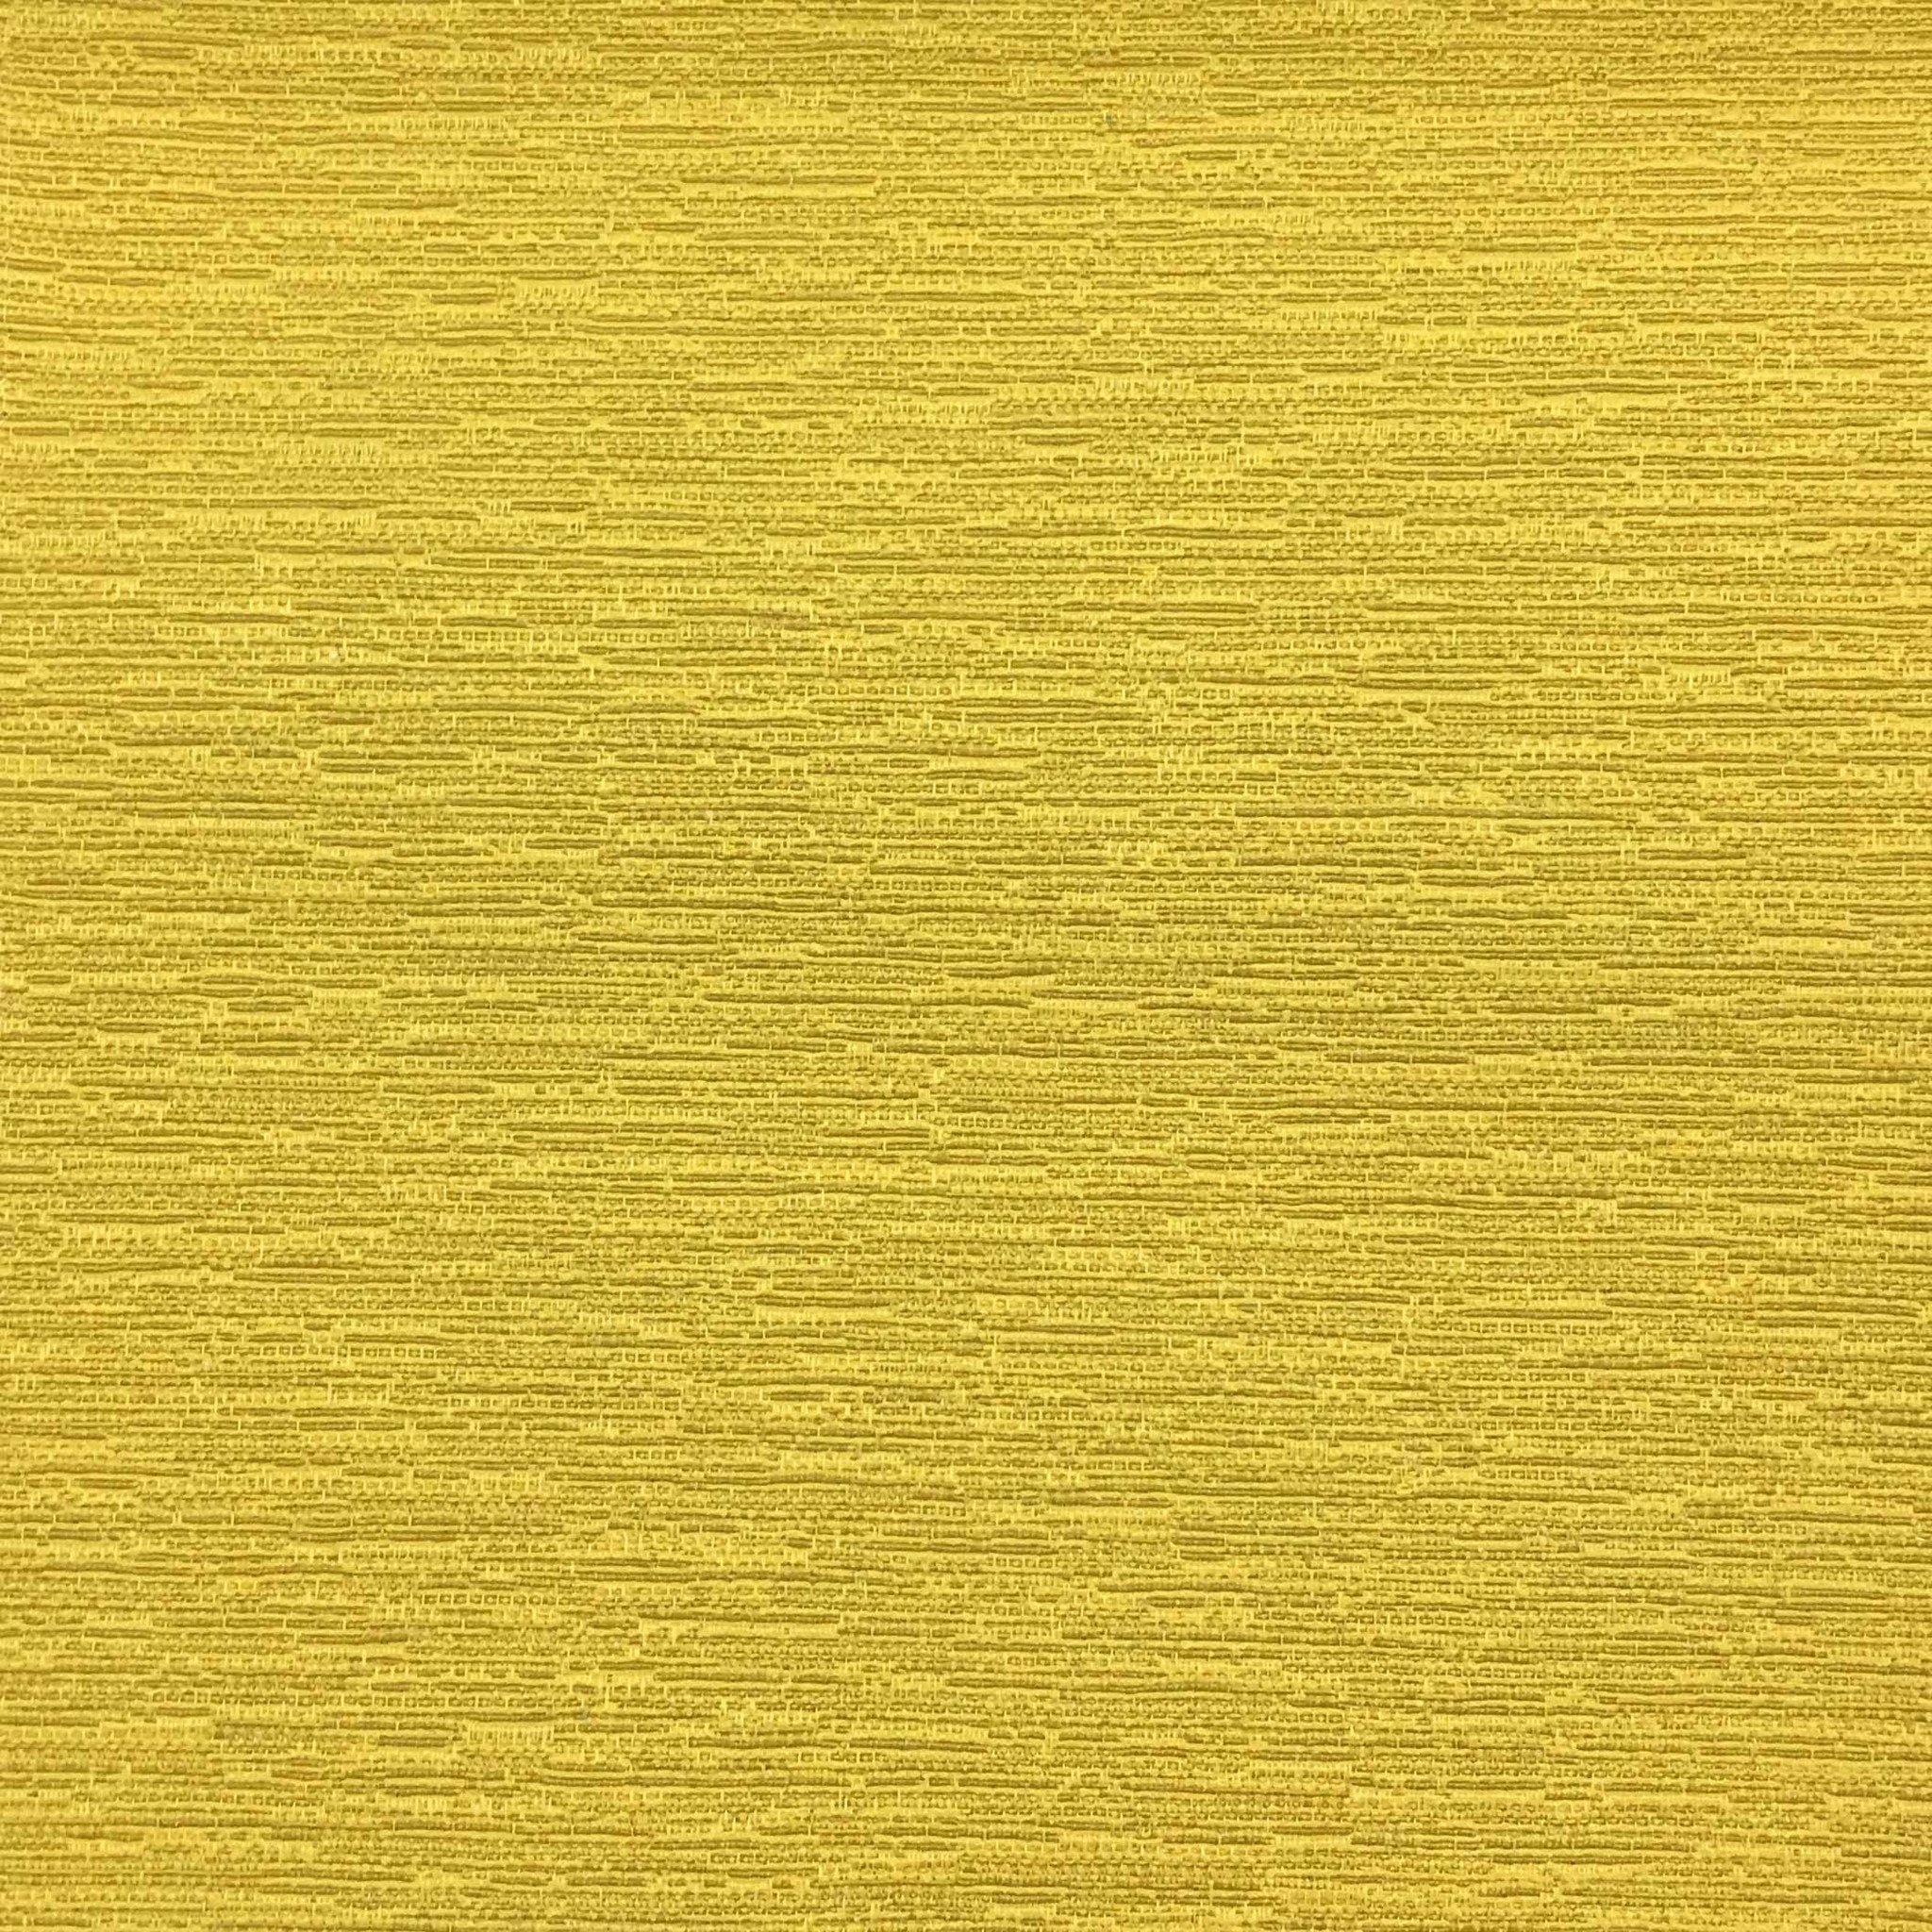 Gene Cotton Polyester Blend Home Decor Textured Fabric